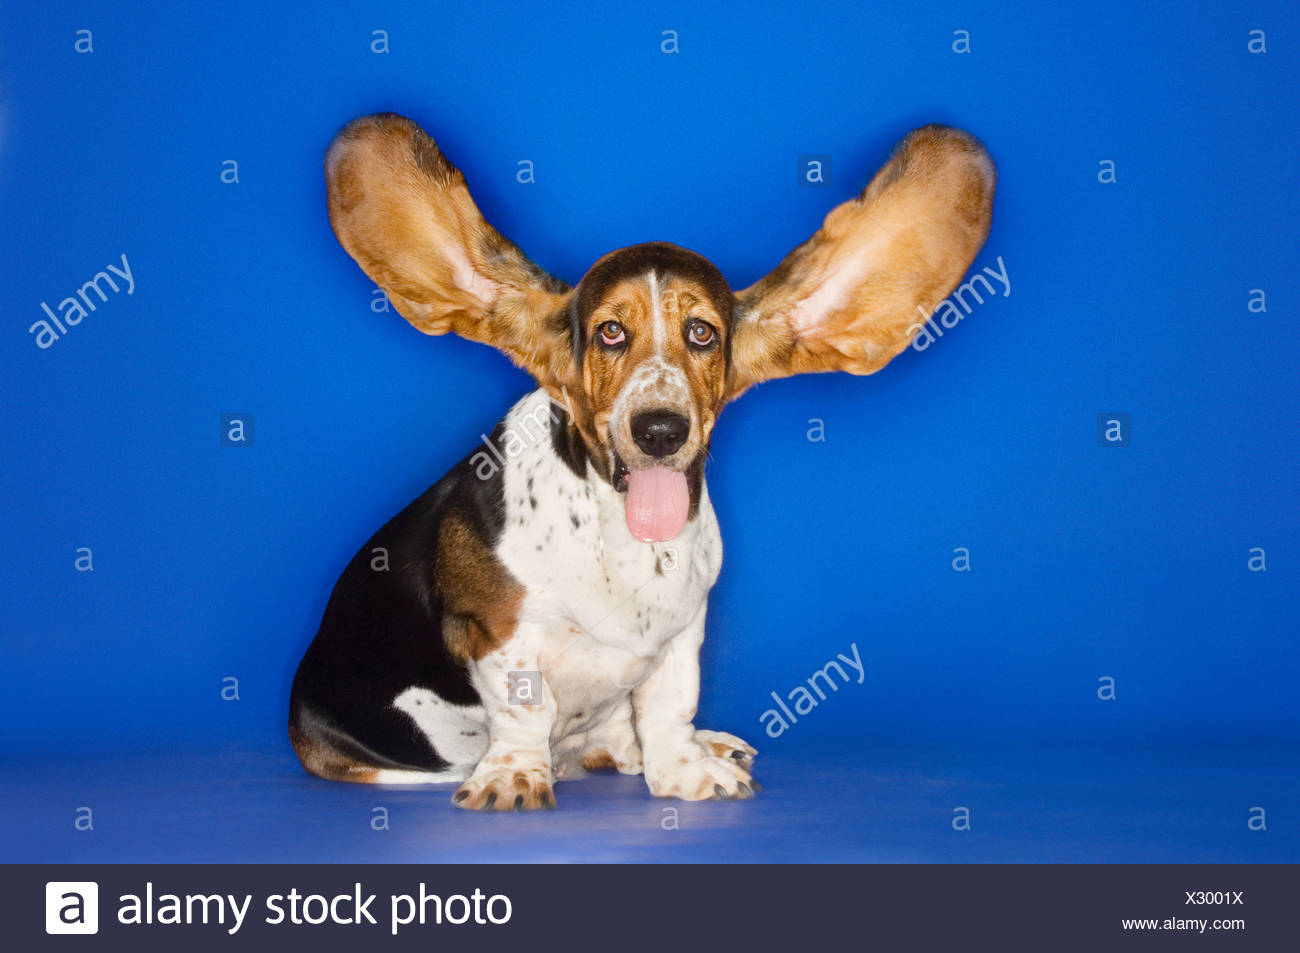 Basset hound with ears extended - Stock Image